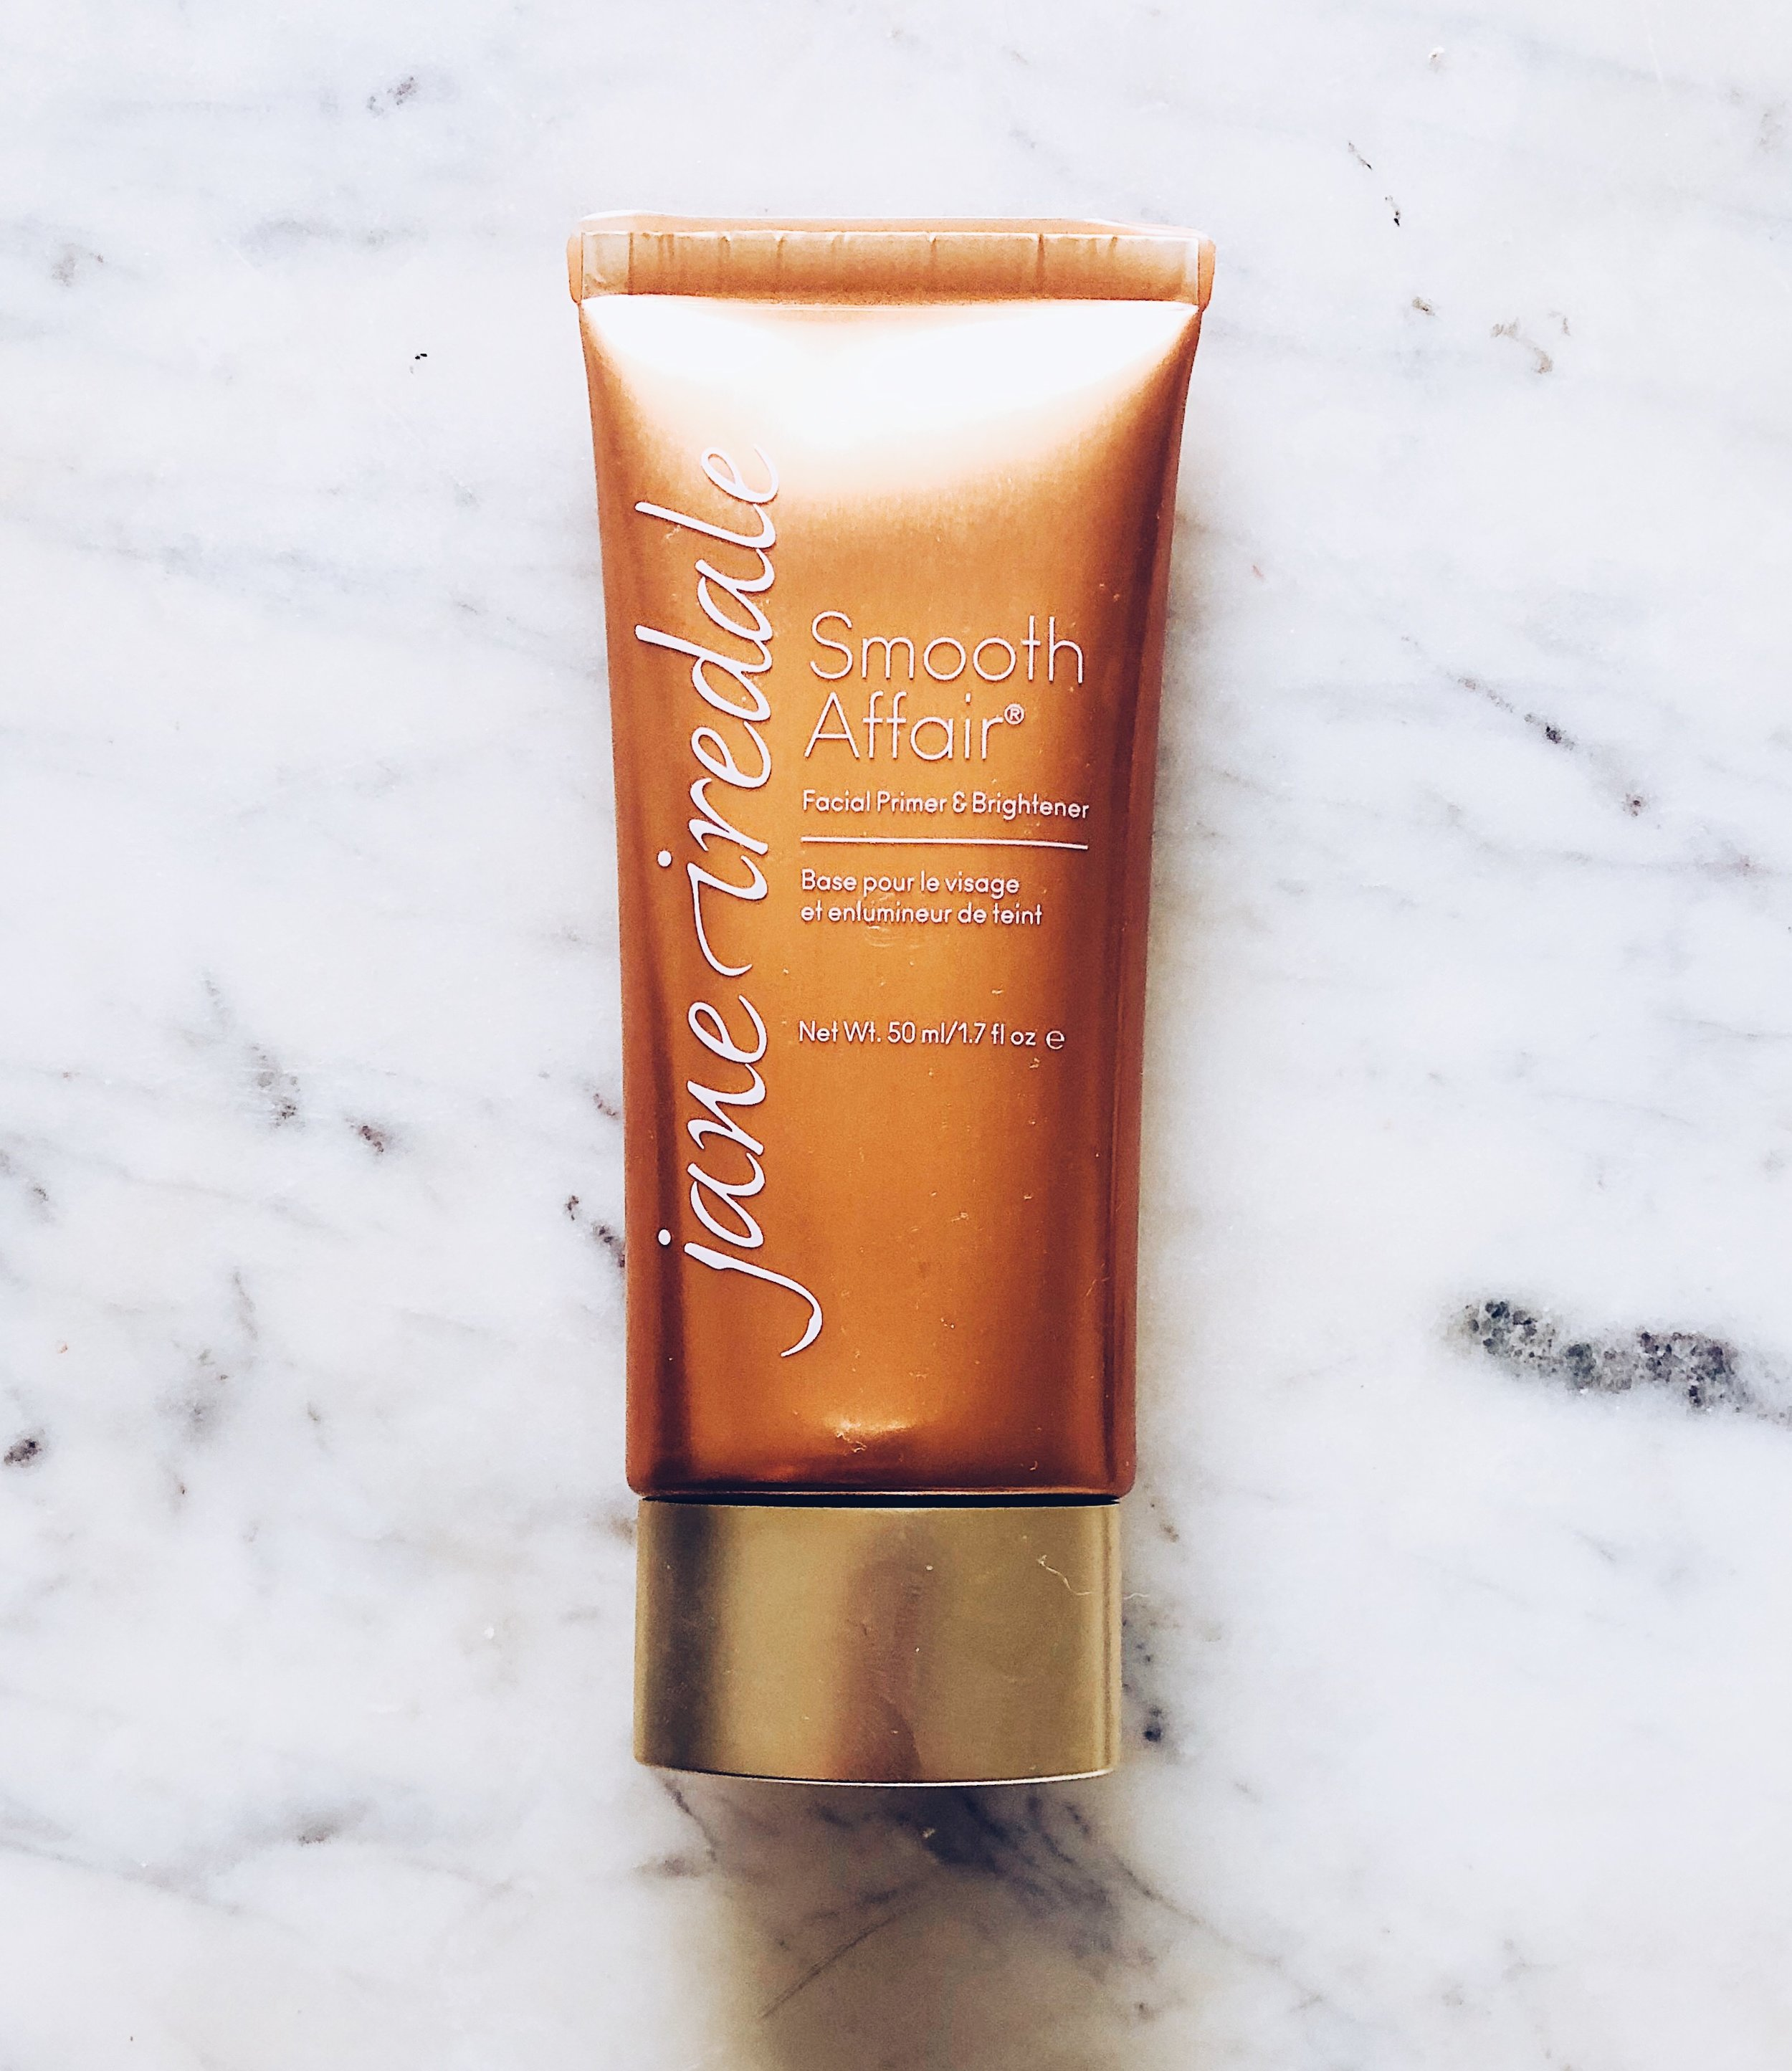 Jane Iredale Smooth Affair Primer & Brightener- $50.00 - Here's the quick SCORECARD breakdown. Each question is rated on a scale of 1 to 5, 5 being the best:1. How do the ingredients look/what's inside?- 3: Dimethicone is in here, and a few other 'iffy' ingredients. More below!2. Does it smooth and minimize pores?- 3: Smoothing? Yes. Pore minimizing? Not so much for me. See a close-up demo in the video. It definitely brightened though!3. Staying Power: Does it last all day or feel greasy?- 3: It wasn't greasy feeling at all, but I didn't see any massive benefits from wearing this in terms of helping foundations last longer.4. Is it non-irritating?- 3: It didn't irritate my skin, but does contain ingredients that could be irritating to sensitive skin types.5. Does it build and blend well?- 5: Absolutely. I had no issues here!6. Is this a consciously-created product?- 3: it is cruelty-free, but I've yet to hear back from the brand on what looks to be plastic packaging. I'll update as soon as I hear!7. Does it do what it says it will do? 3- I speak more to this in the video review, but I didn't see the anti-aging benefits or skin firming. It fell a bit short.FINAL SCORE:20/30